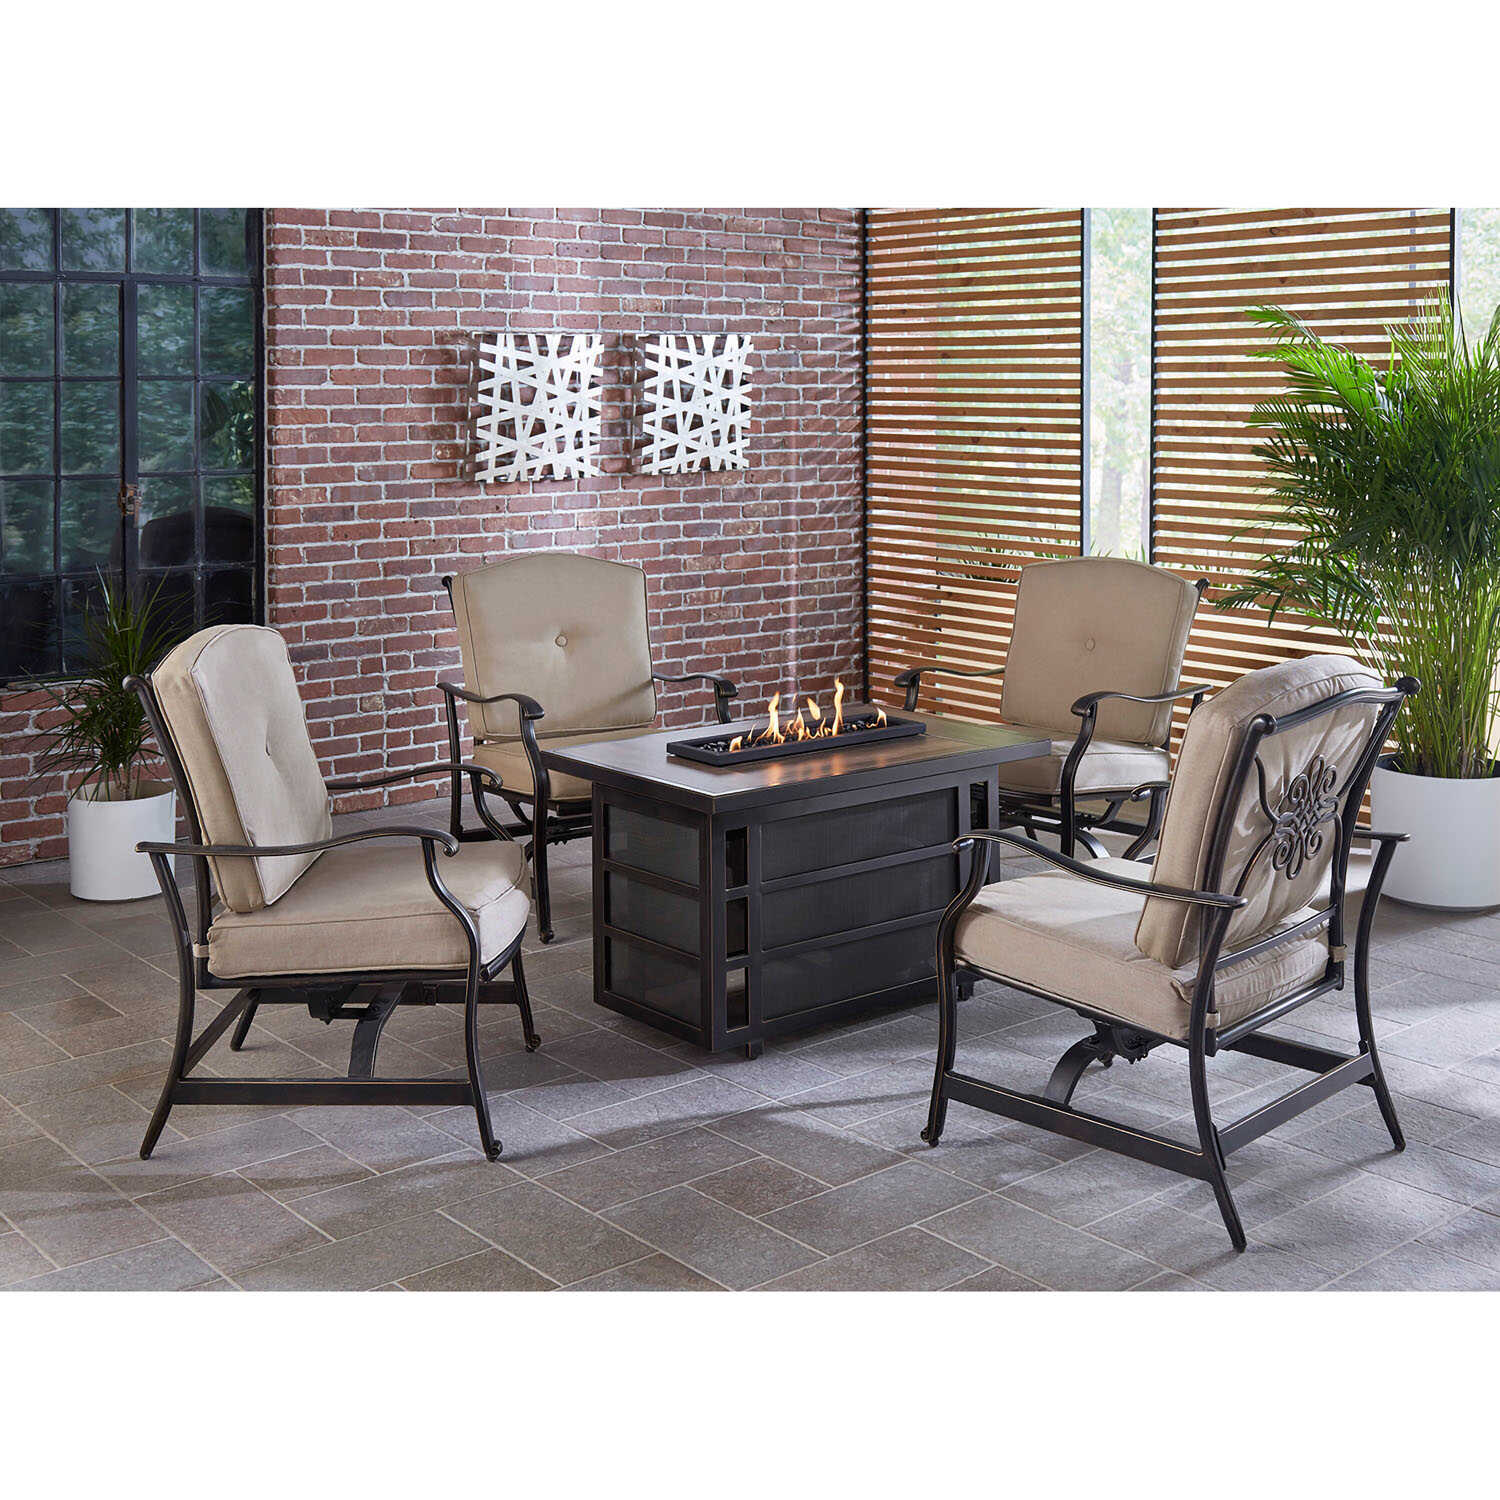 Hanover  Traditions  5 pc. Bronze  Aluminum  Firepit Set  Tan